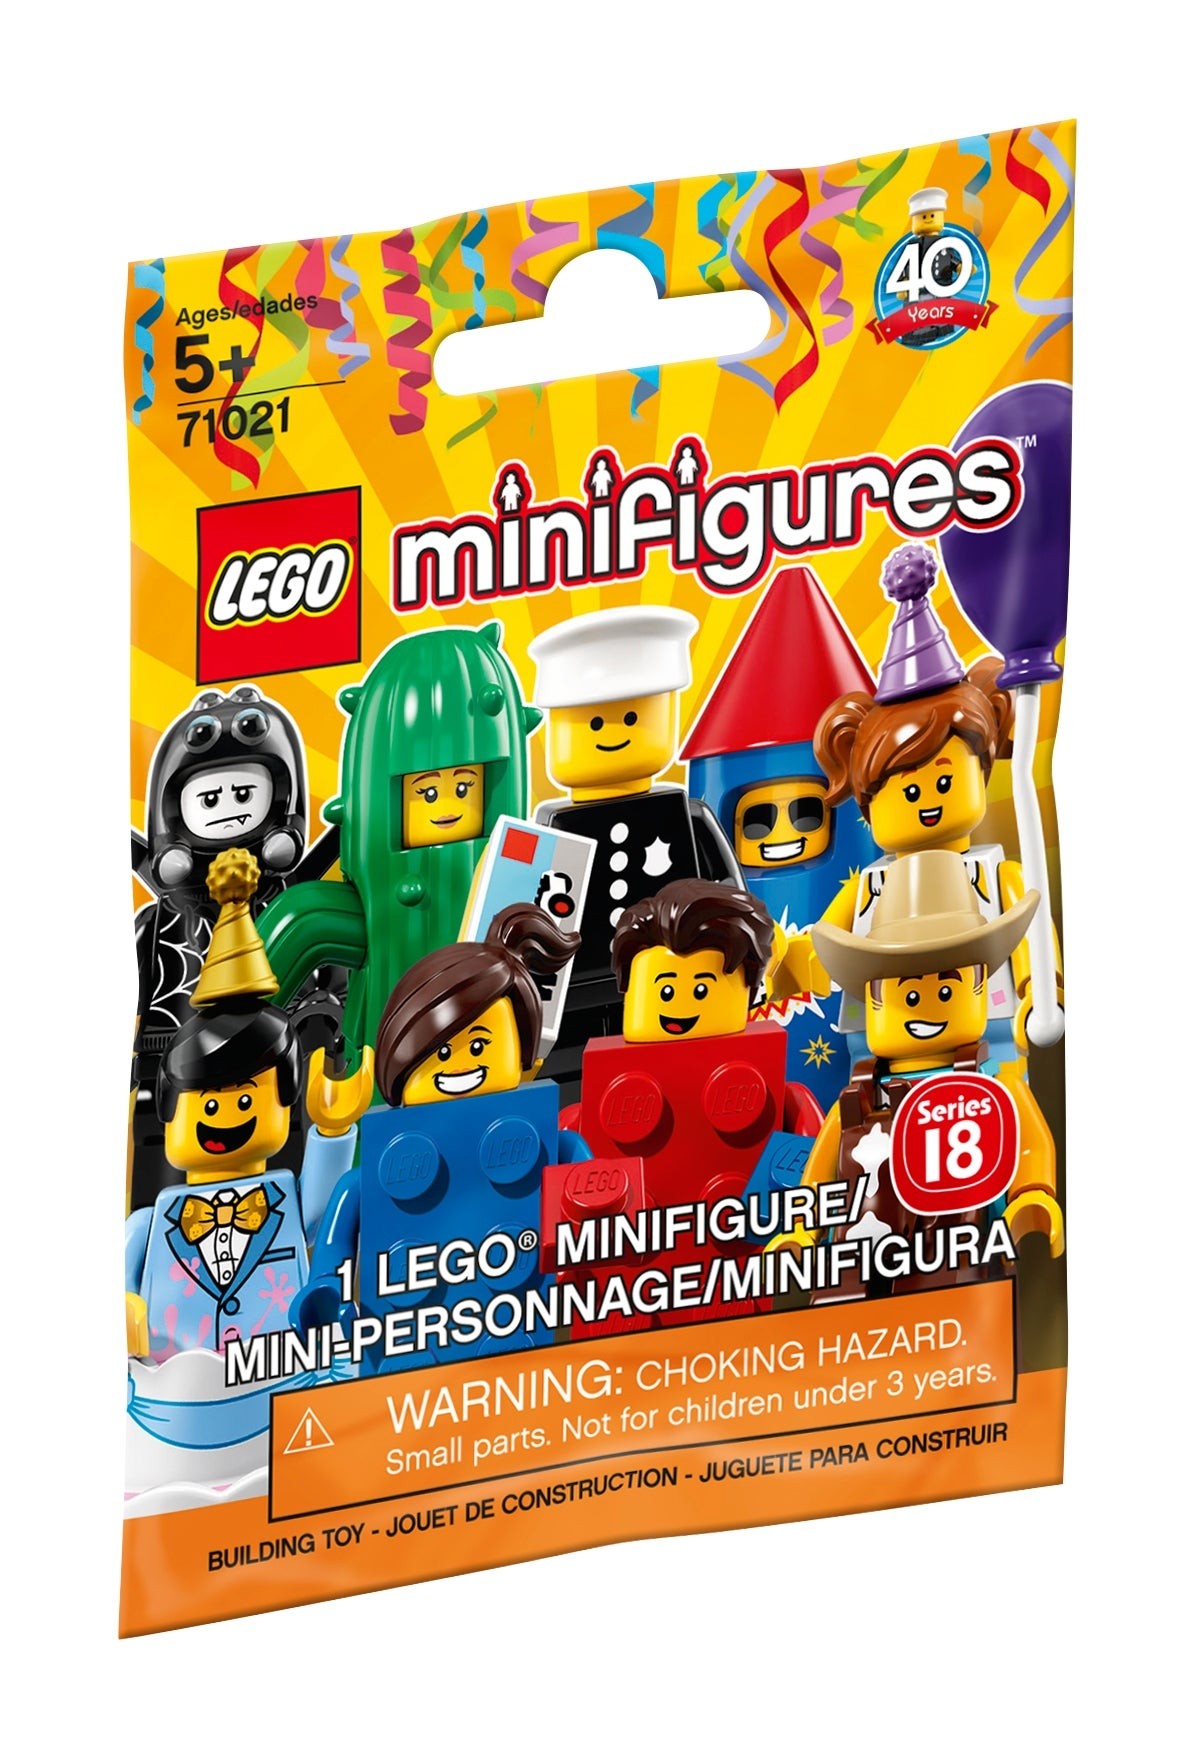 Lego Minifigures series 18 Brick Suit Guy Brand New complete w// accessories